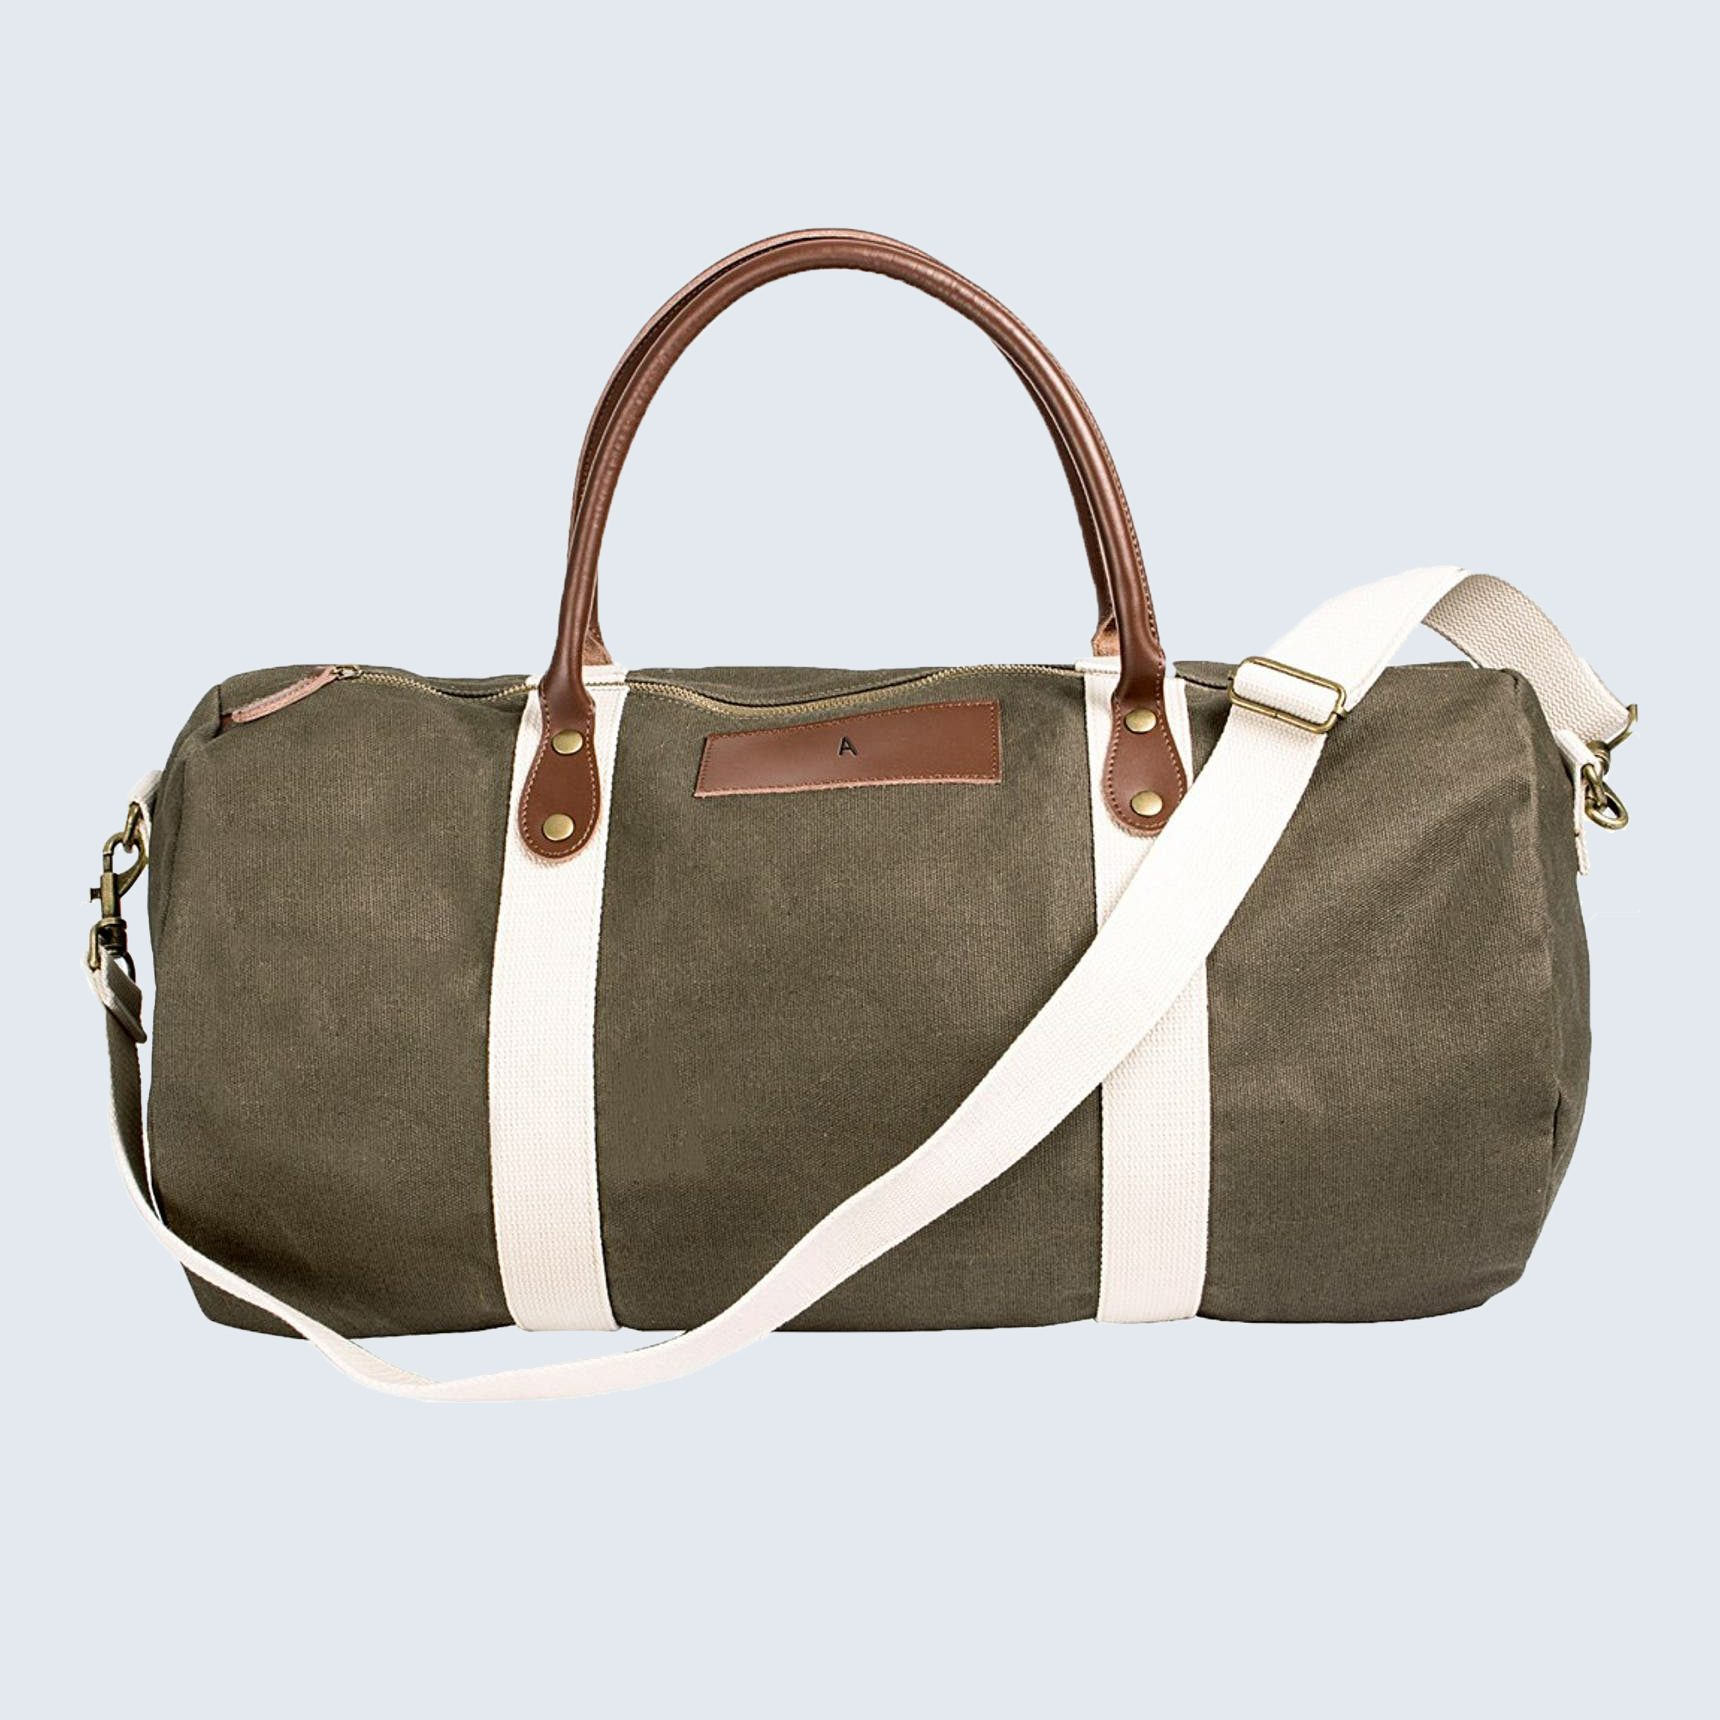 Monogrammed duffel bag for Father's Day